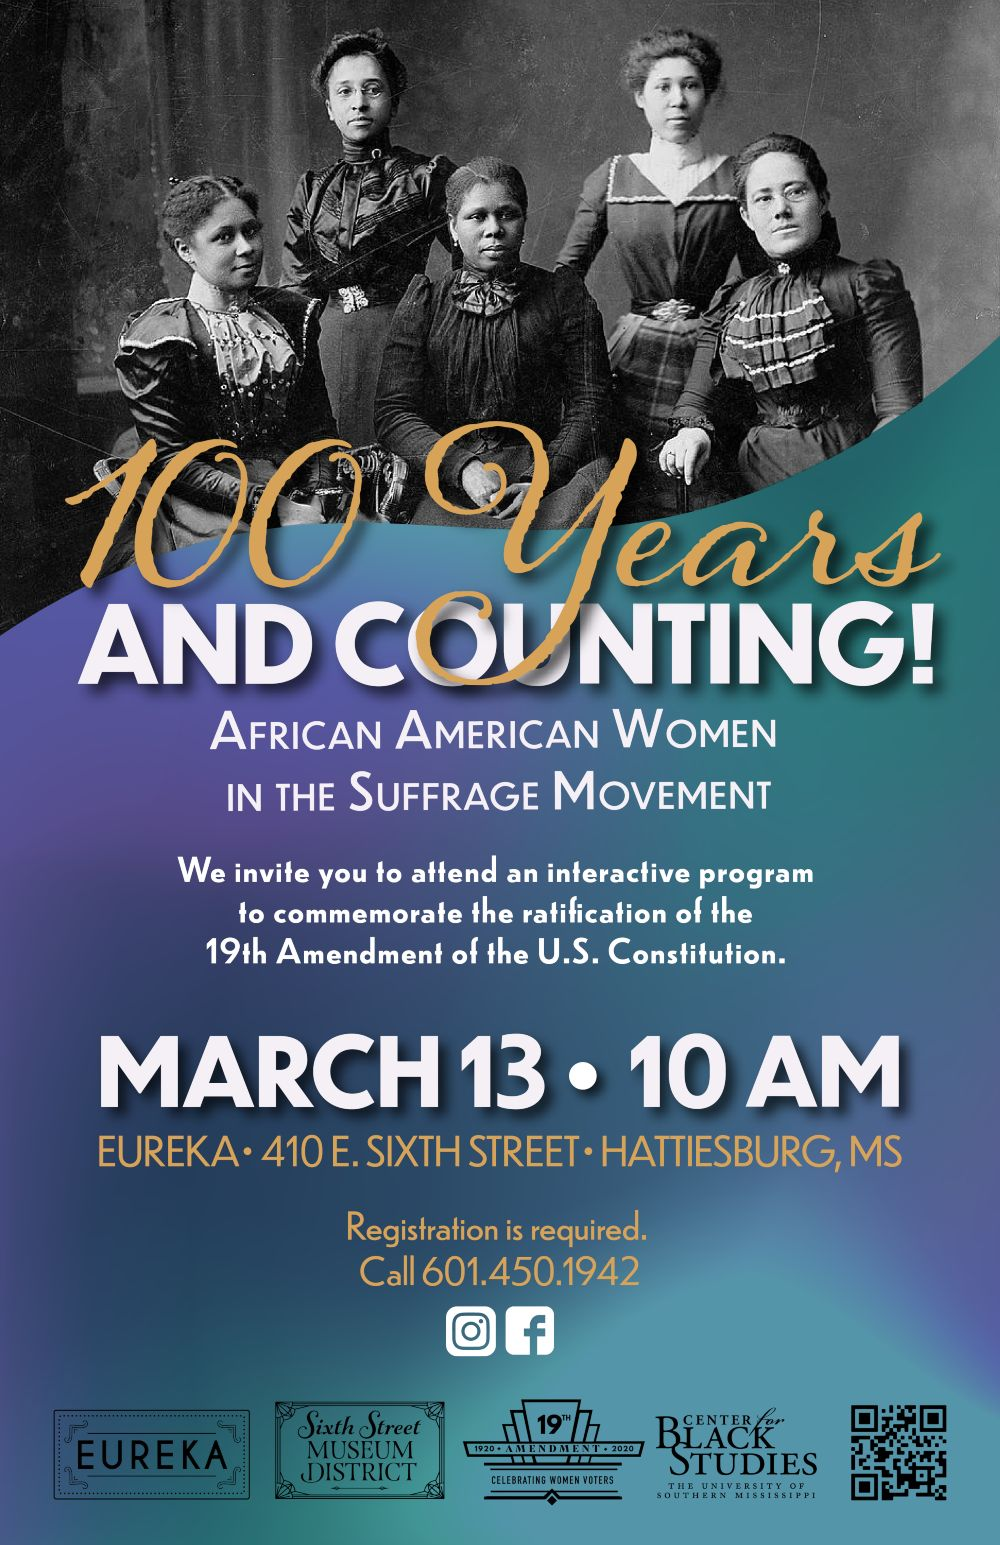 100 years and counting - March 13 at 10 AM - Eureka School